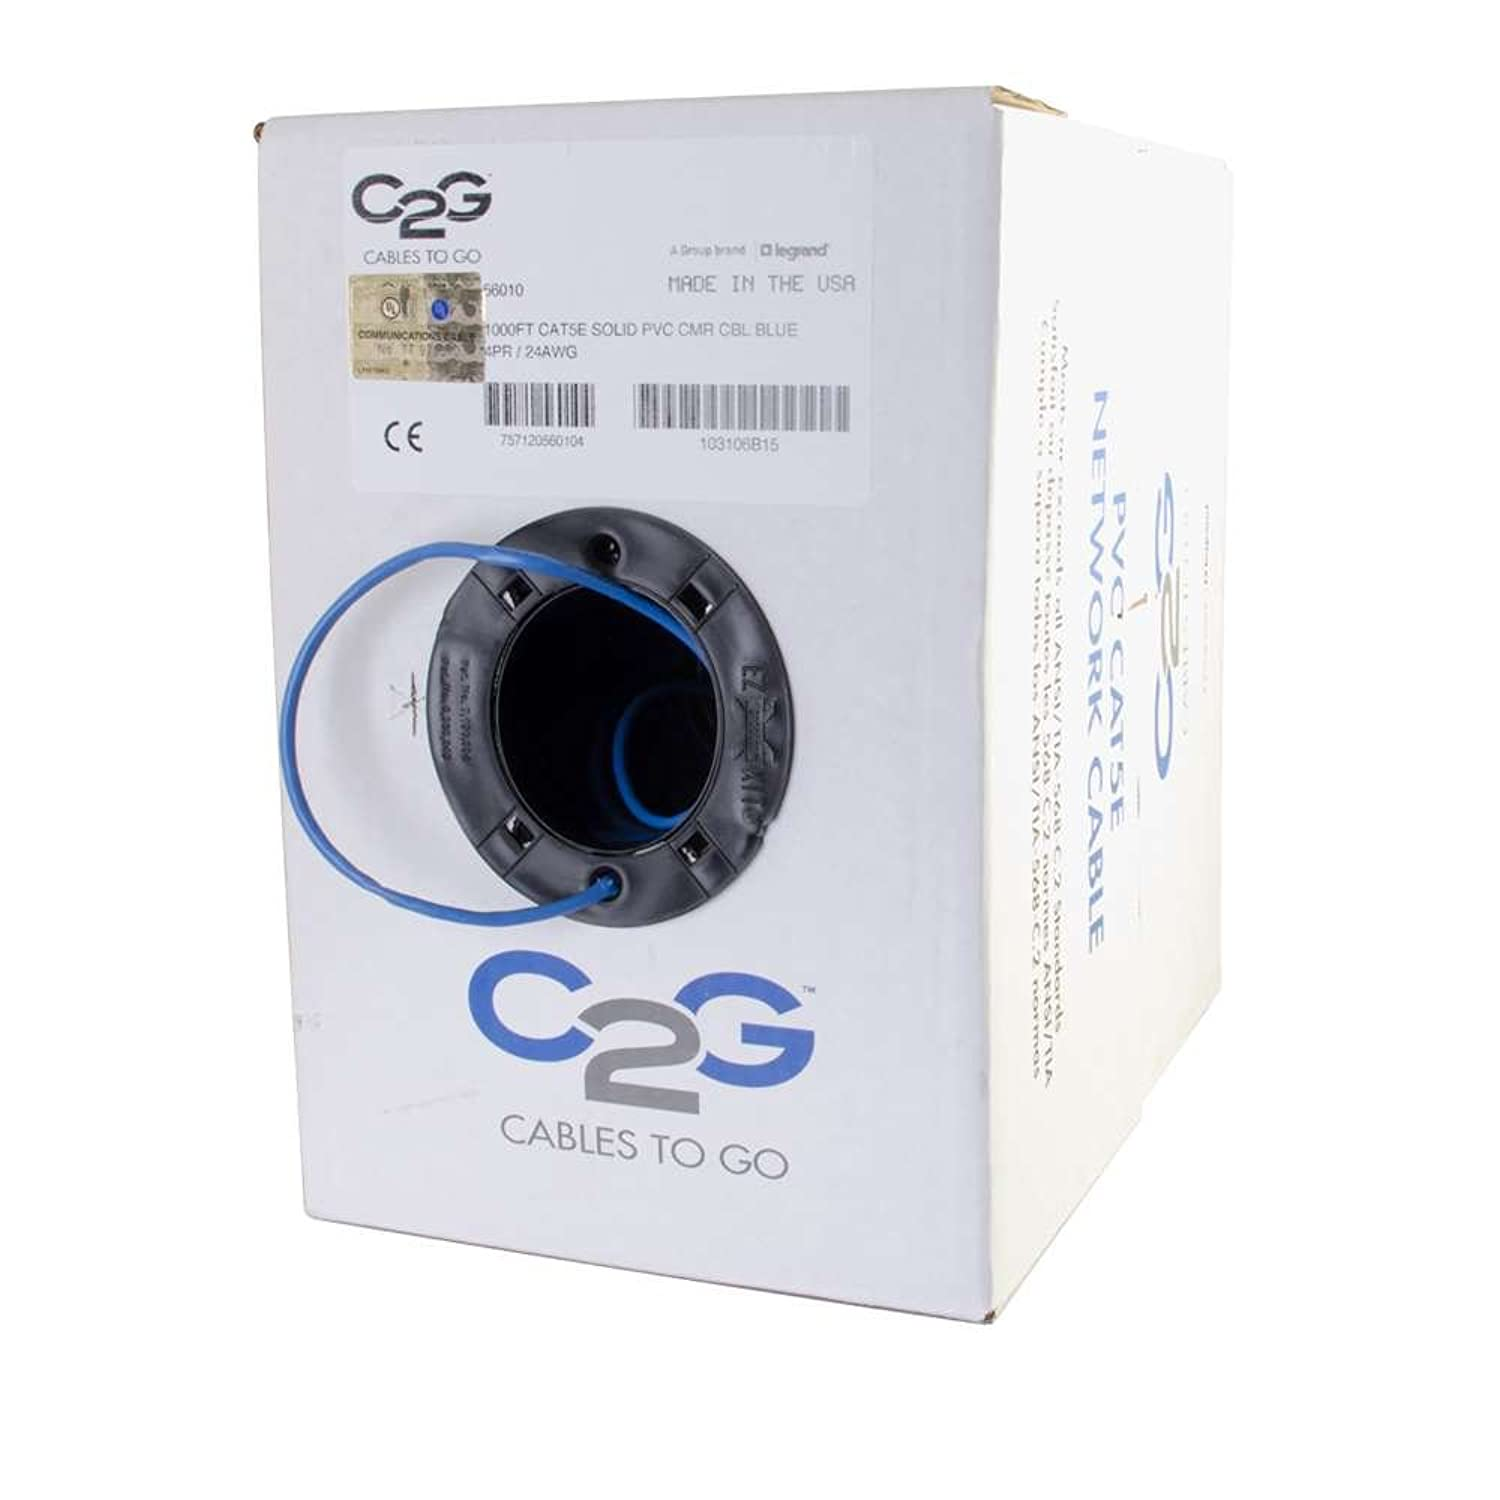 C2G 56010 Cat5e Bulk Cable - Unshielded Ethernet Network Cable with Solid Conductors, Riser CMR-Rated, TAA Compliant, Blue (1000 Feet, 304.8 Meters) (Made in The USA) fqebot2190769